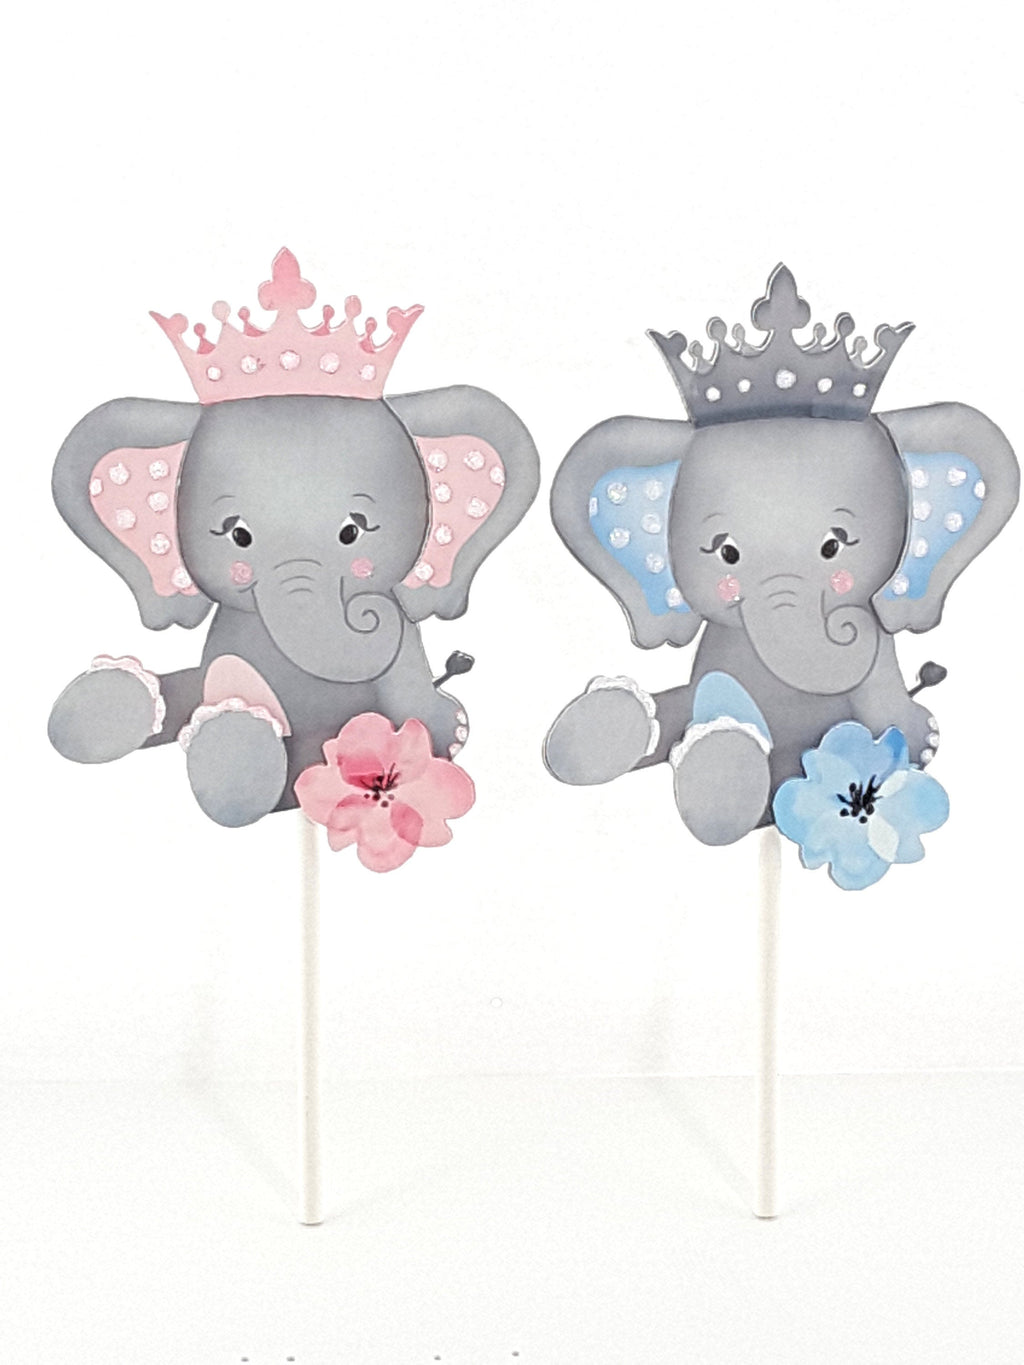 Adorable Personalized Elephant Cake Topper in Pink or Blue or Purple, Cake Decoration, Birthday cake, baby shower cake decoration - TheLastWordBish.com